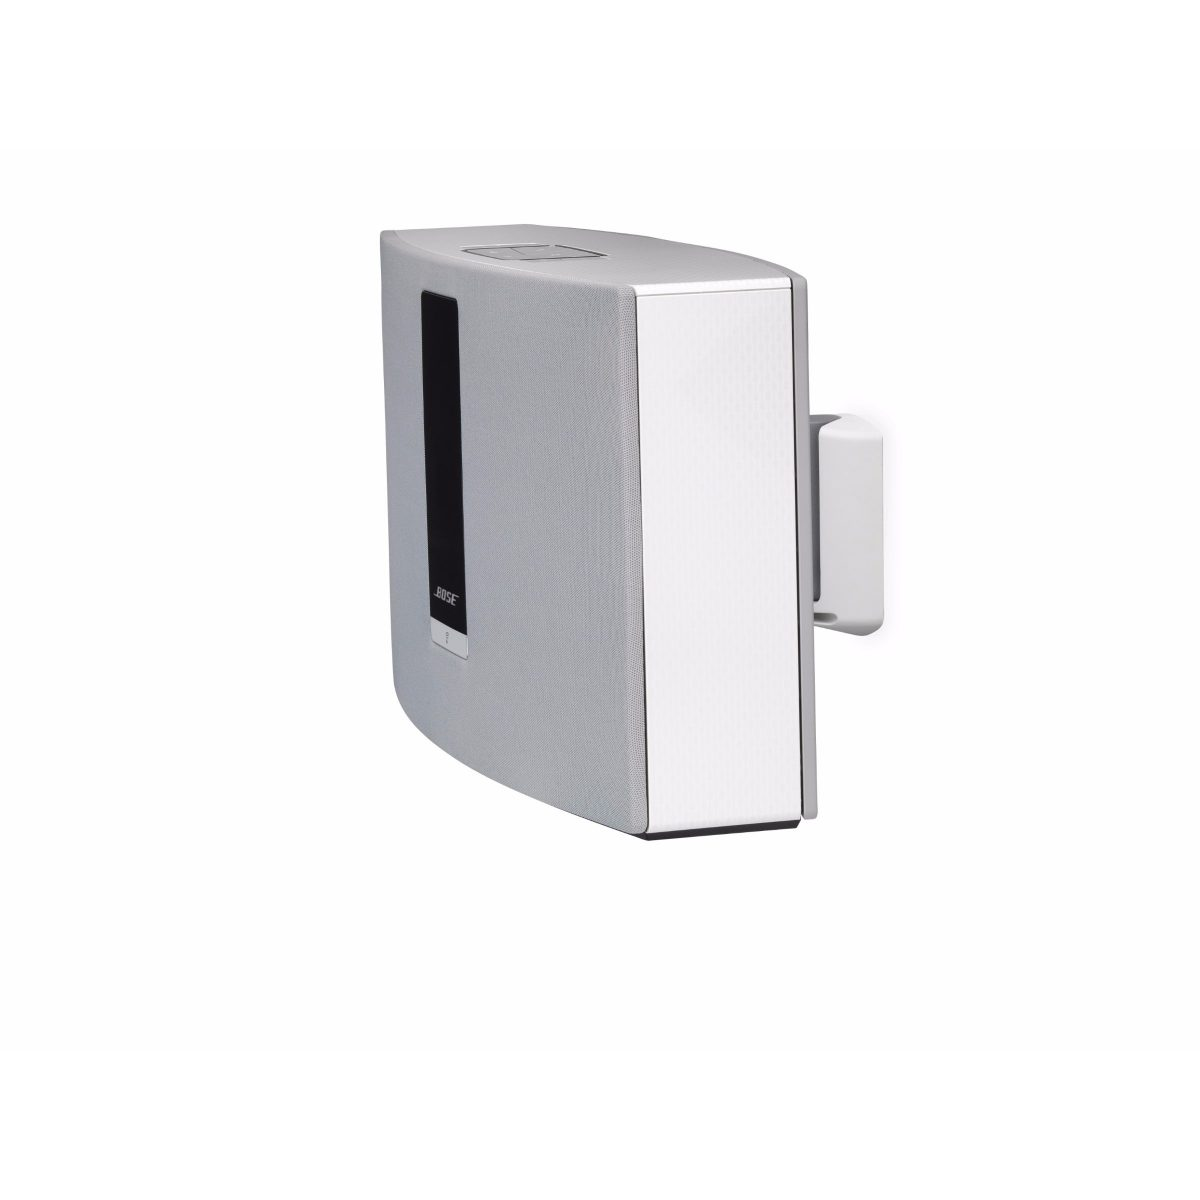 Bose SoundTouch 20 Muurbeugel wit 5